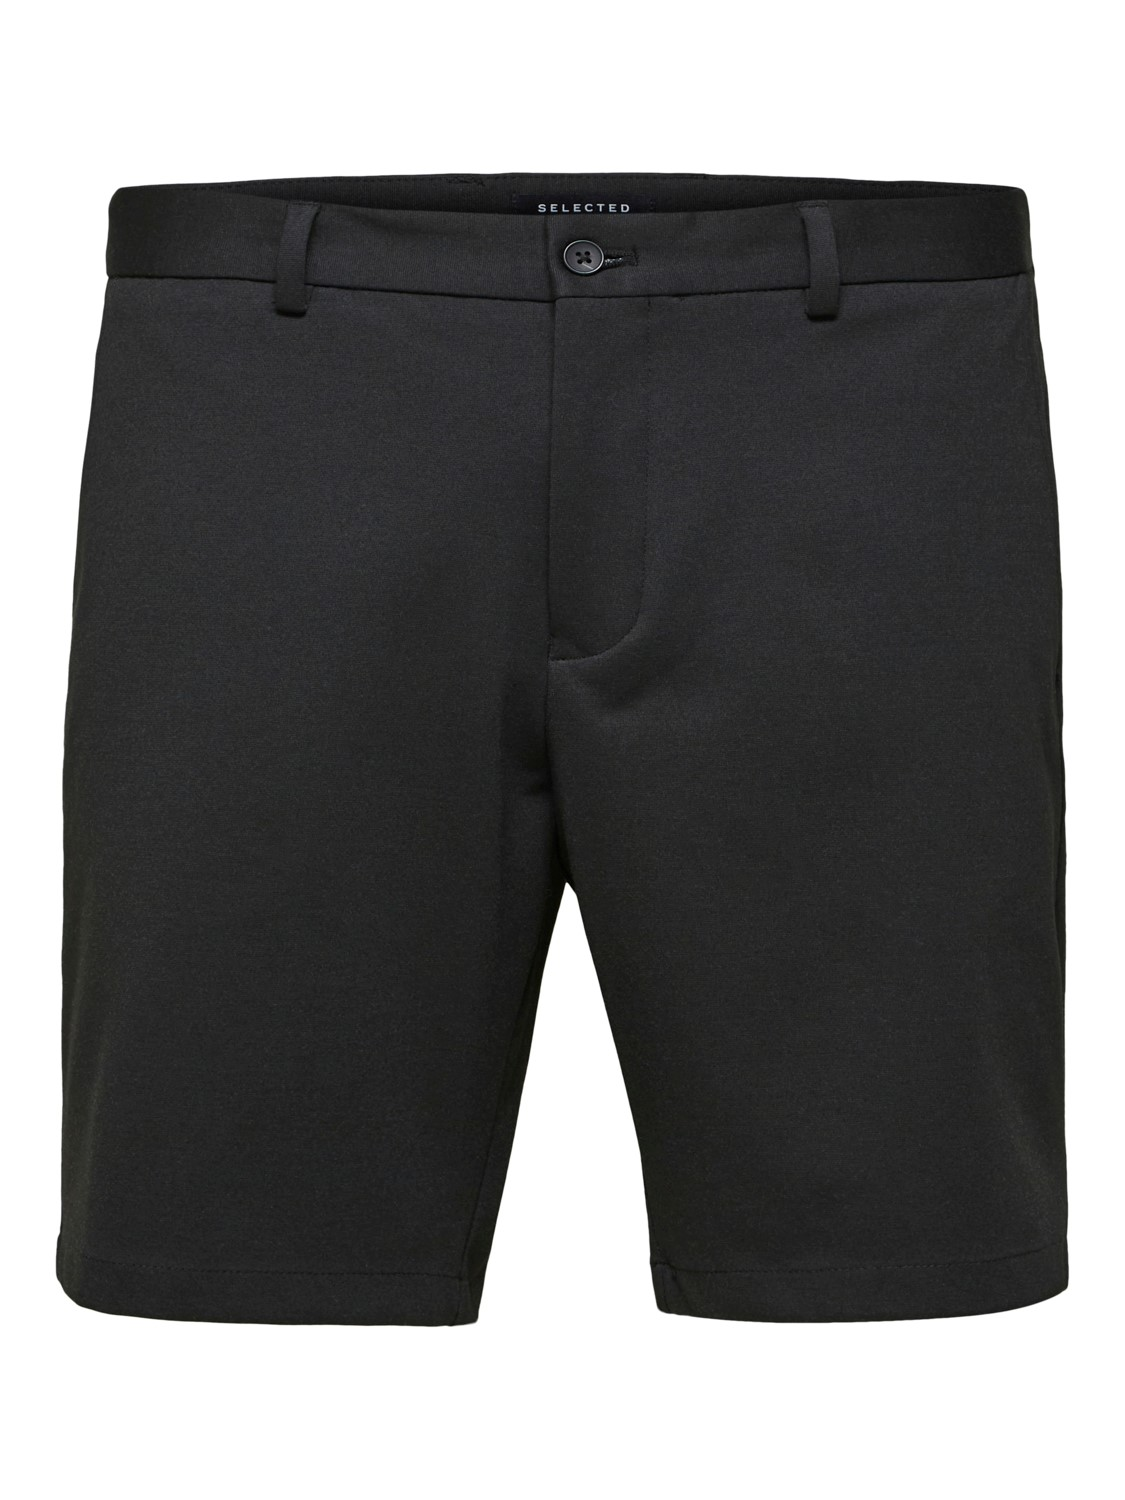 Selected - slhaiden Shorts Black | Gate36 Hobro